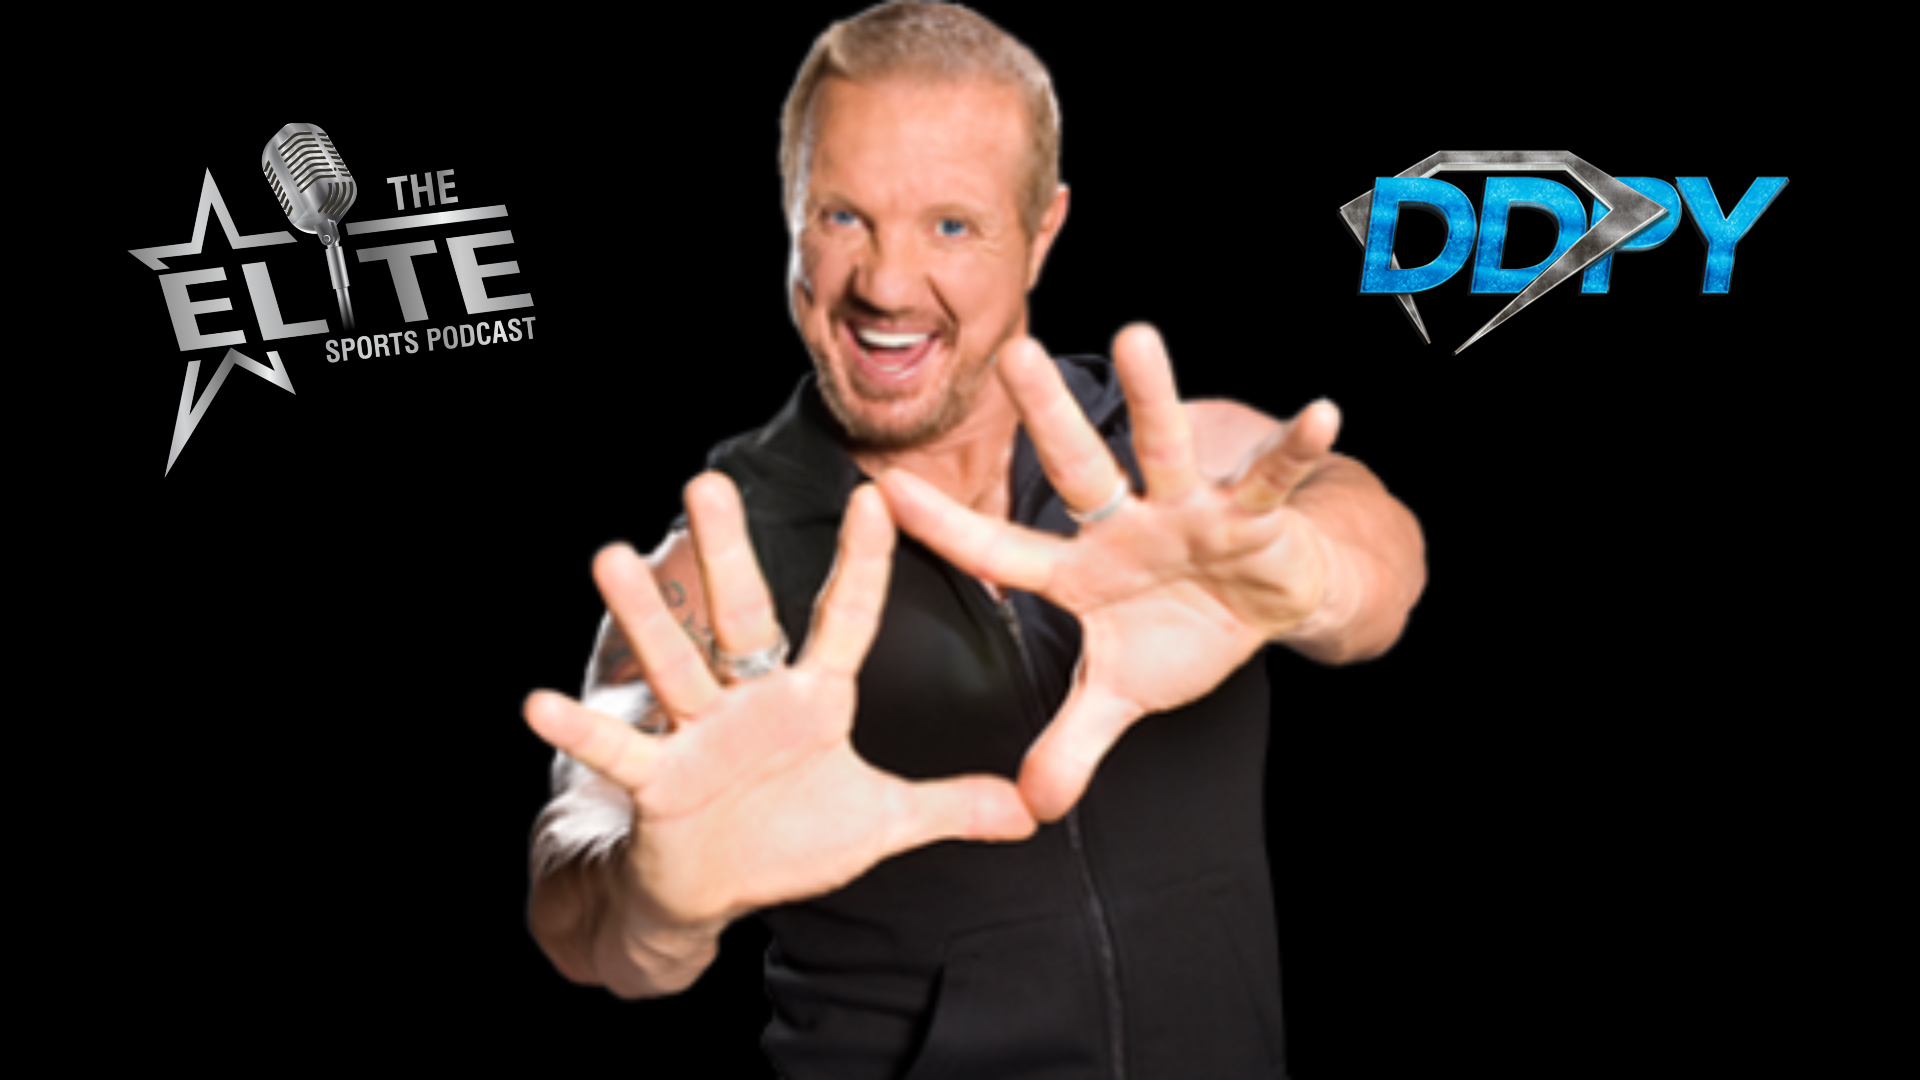 Elite Sports Podcast Interviews DDP